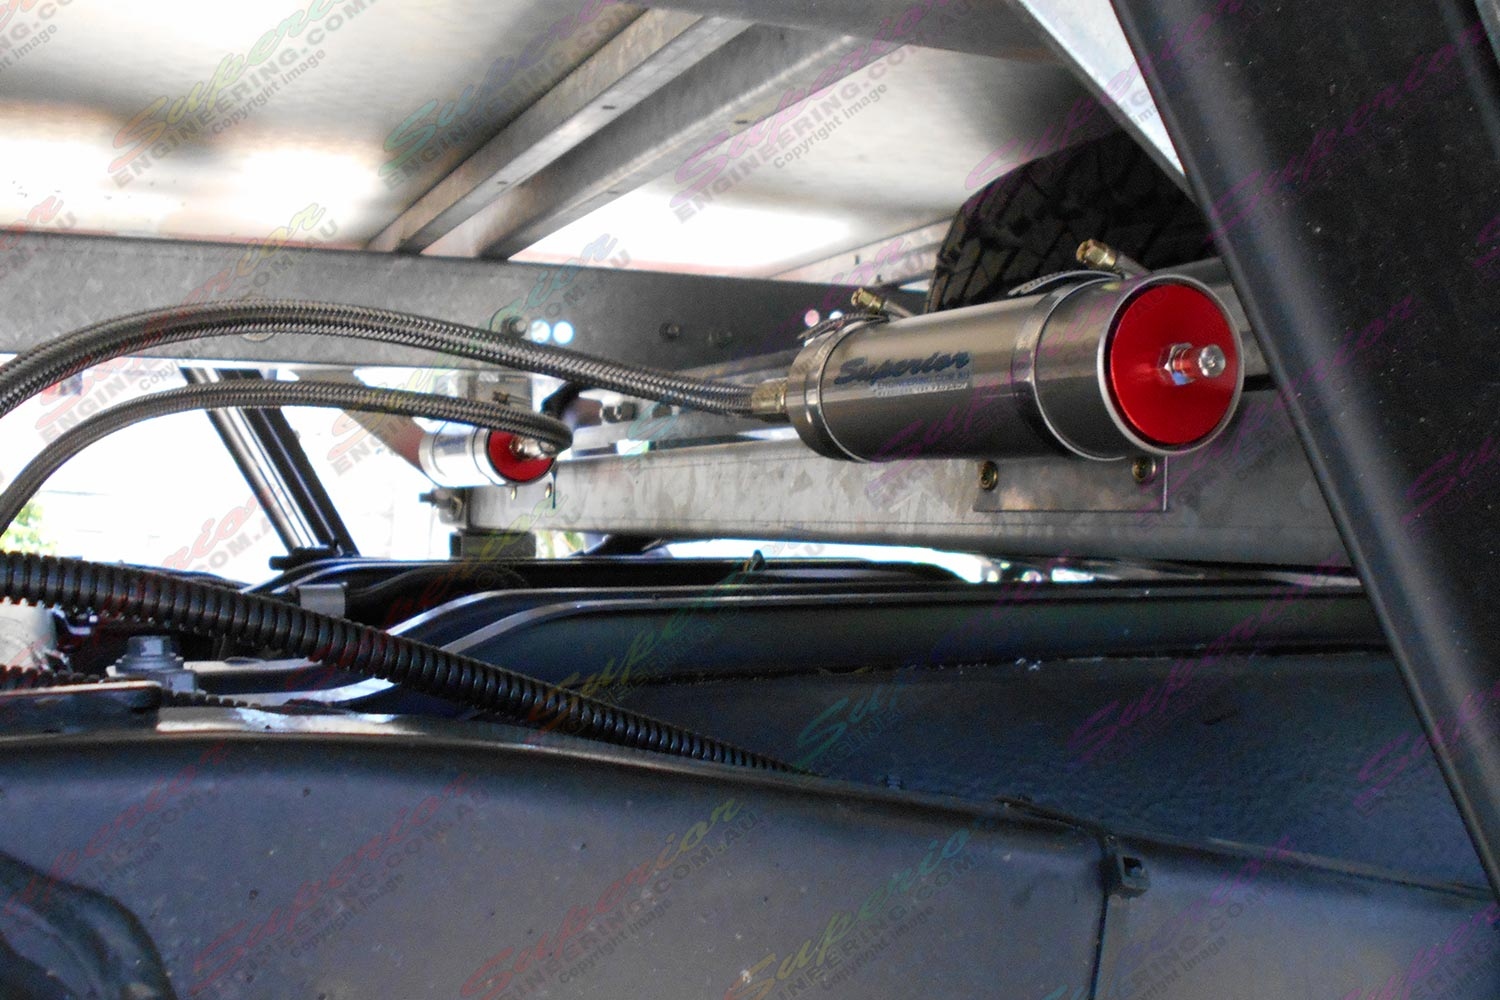 Rear AmadaXtreme Remote Reservior Shocks mounted to vehicle